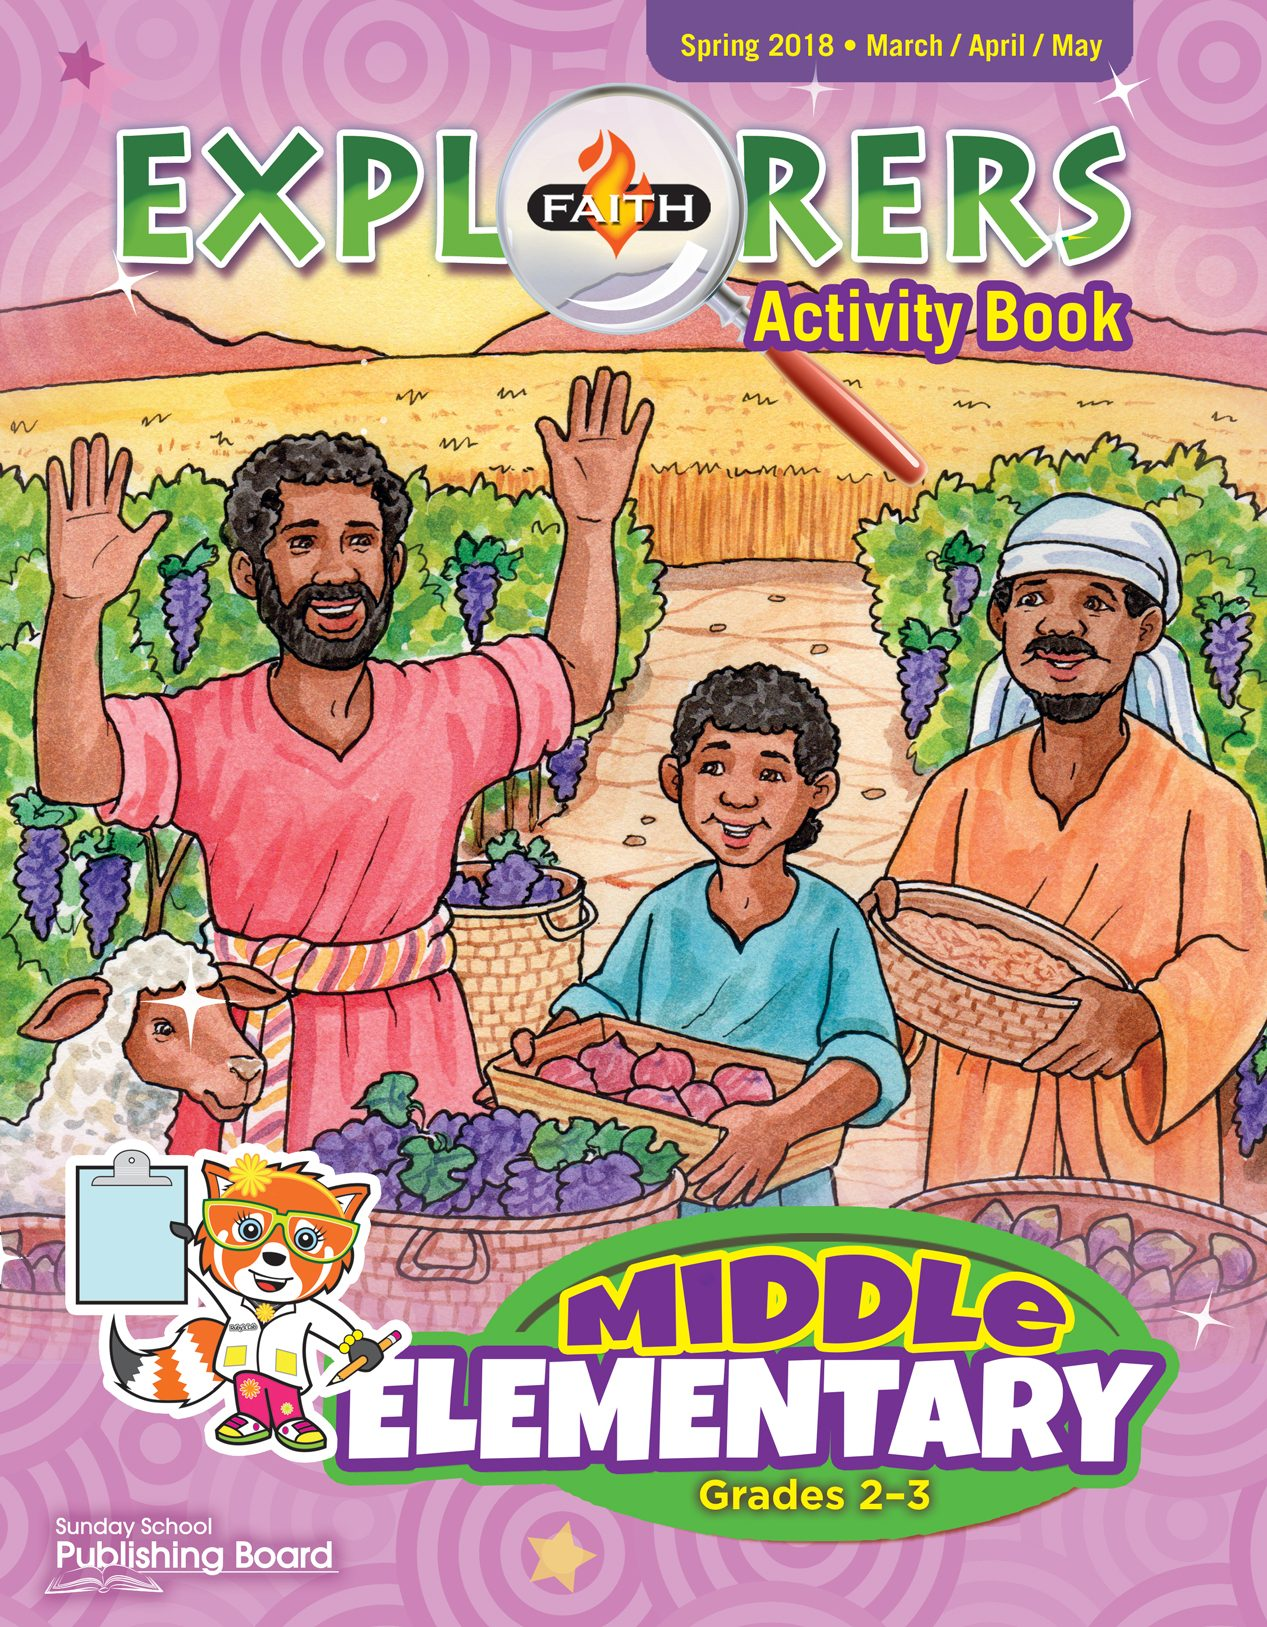 Faith Explorers Activity Book, Middle Elementary for Grades 2-3 (Spring 2018)-Digital Edition